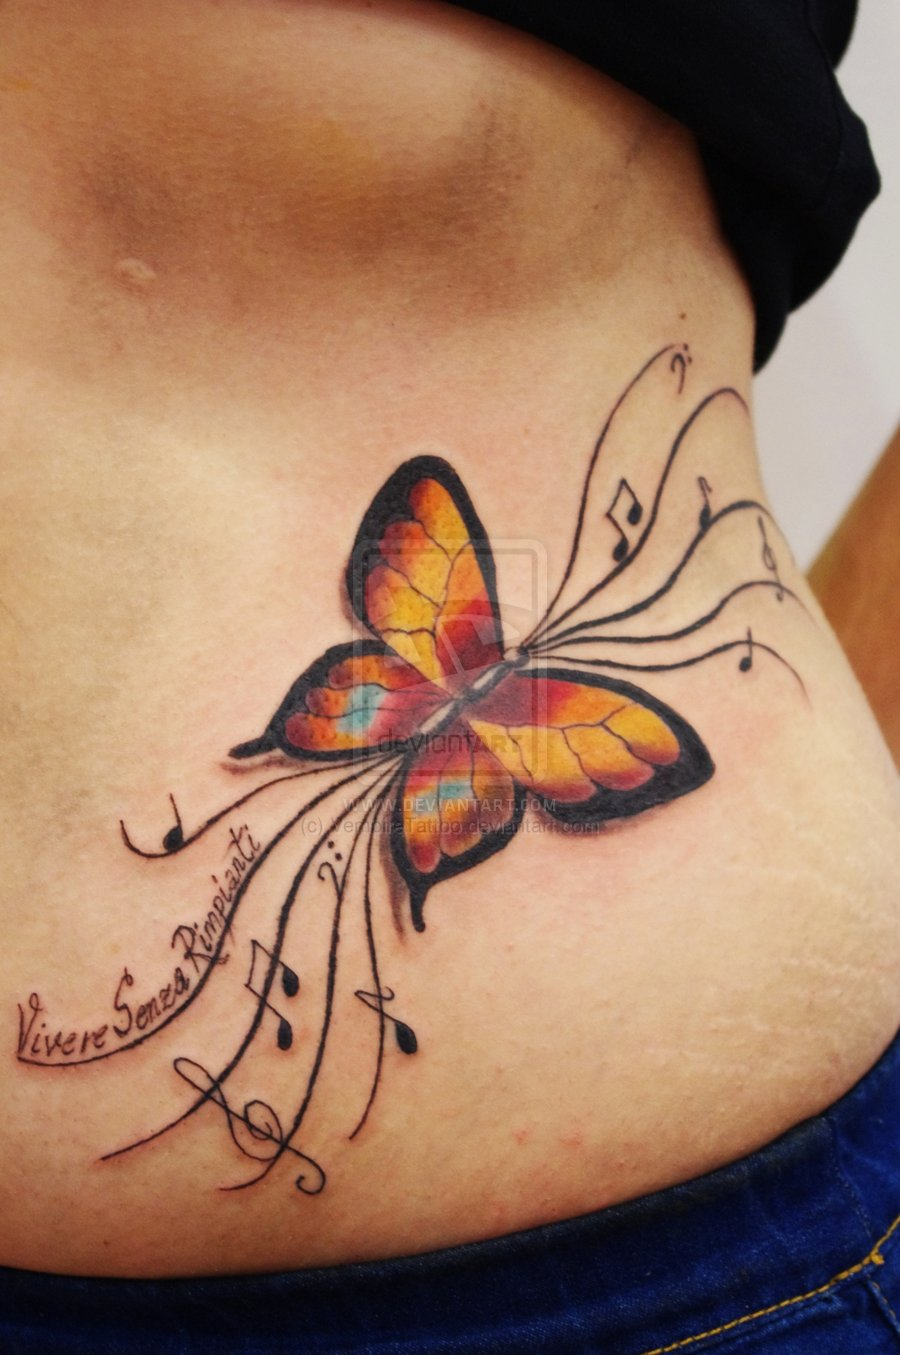 da964b5af1aac Amazing Yellow Blue Black And Red Color Ink Butterfly Tattoos Design On Rib  For Girls